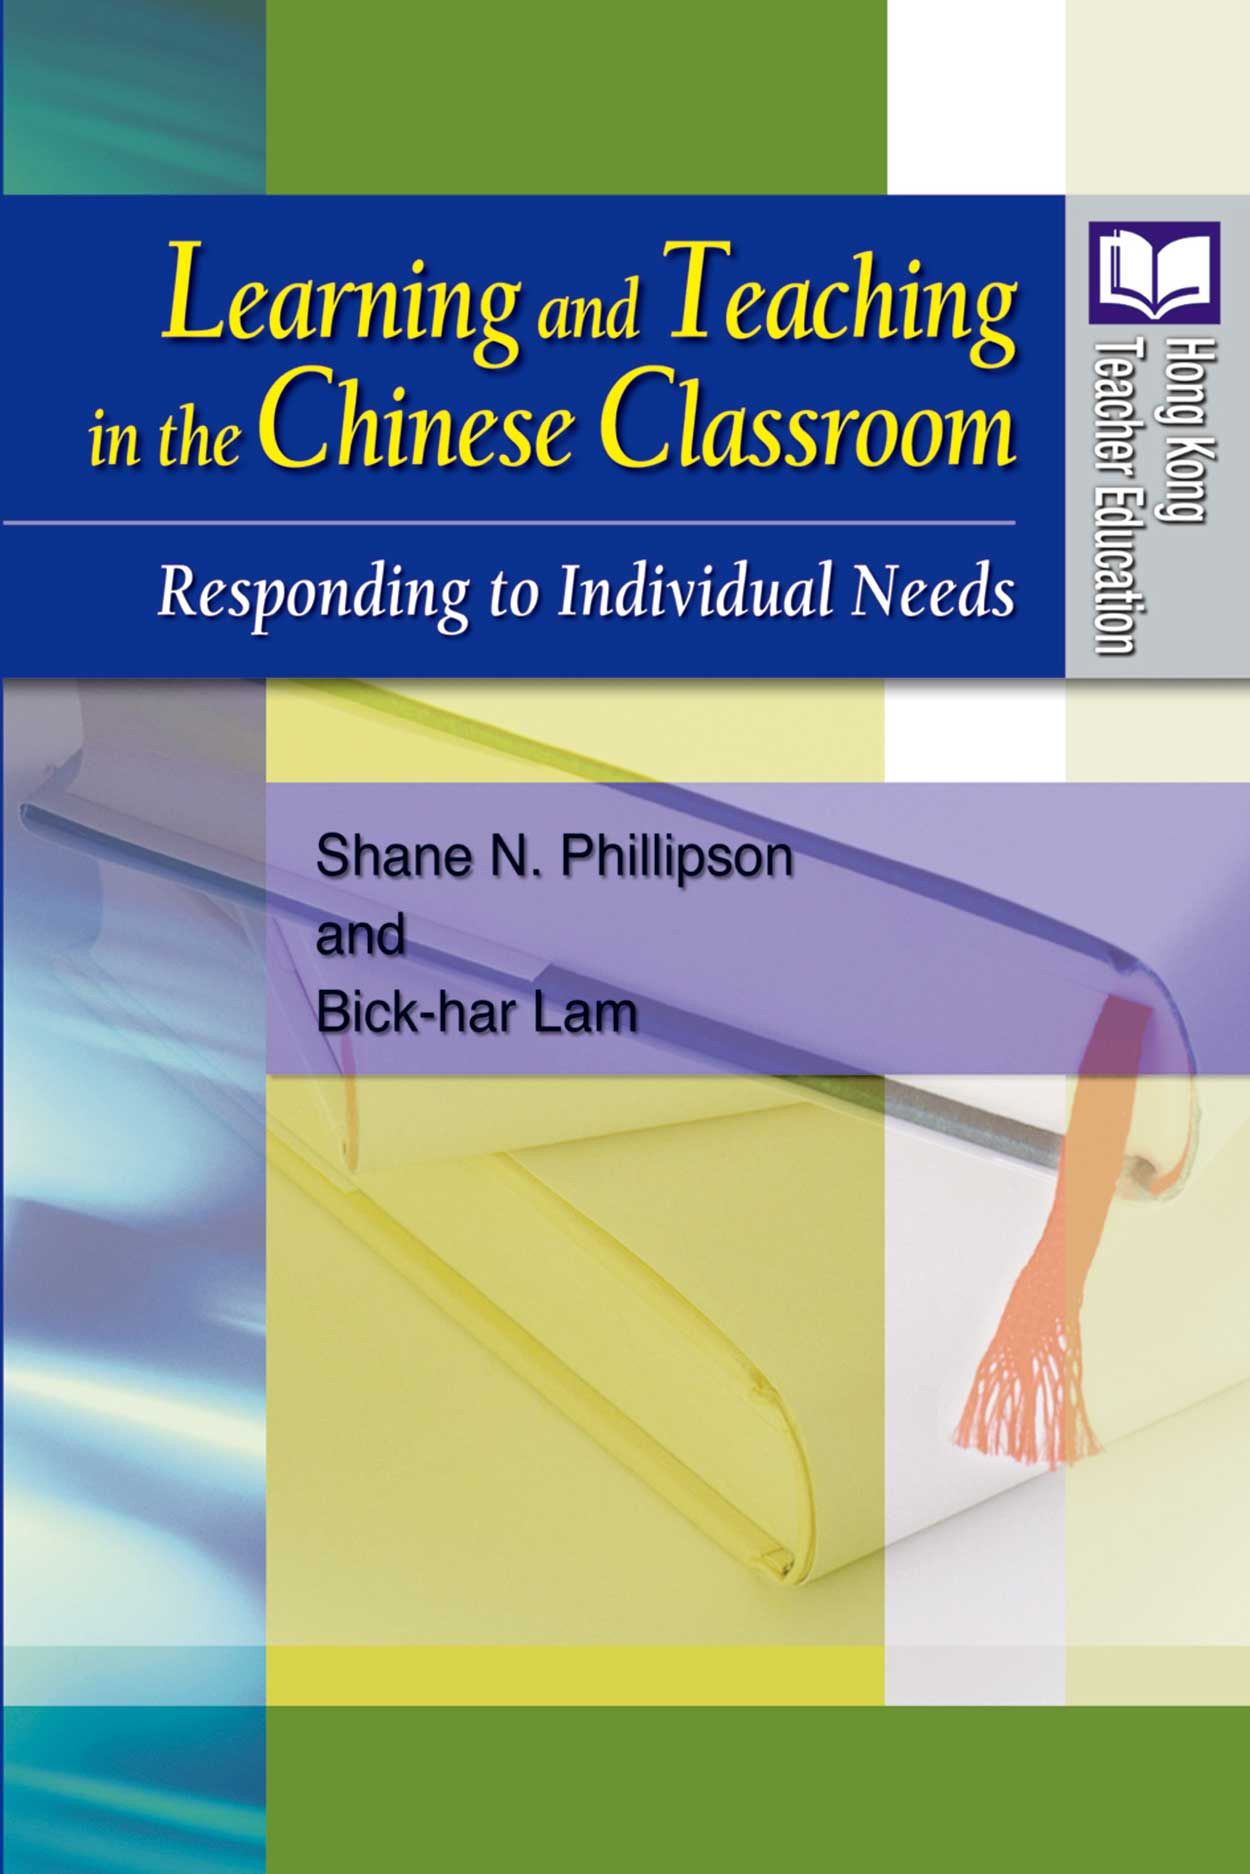 Learning and Teaching in the Chinese Classroom